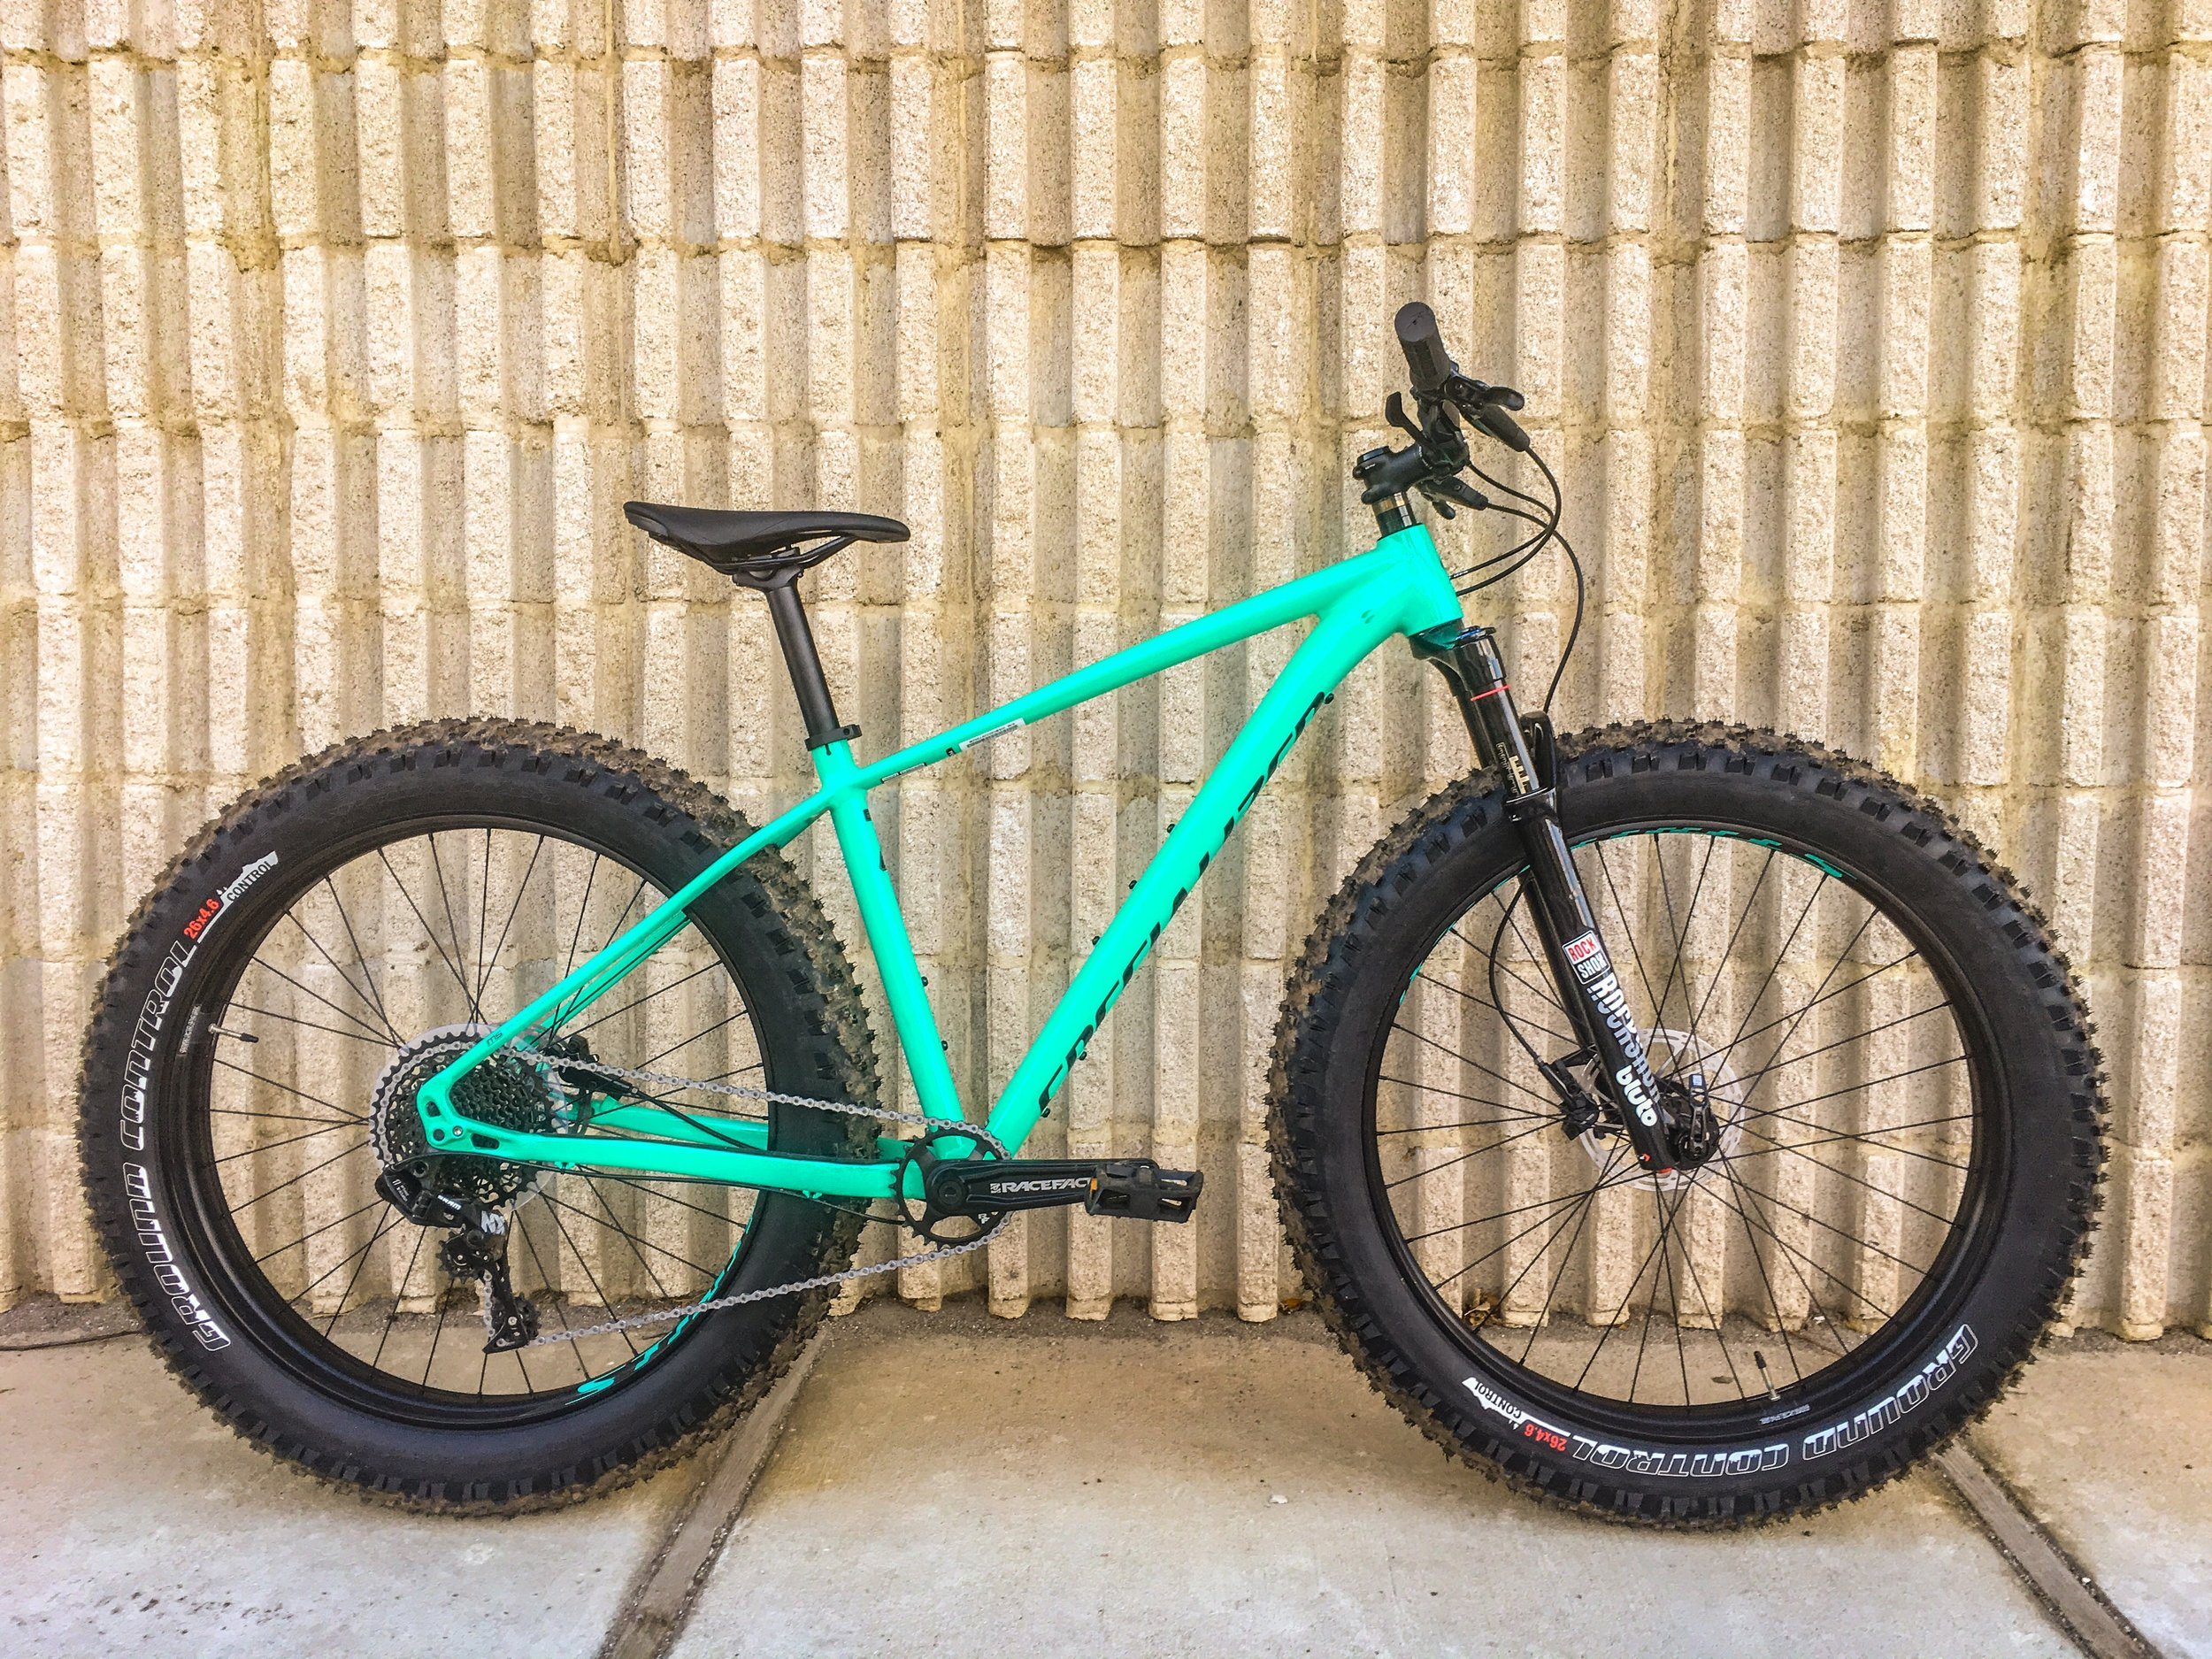 "SPECIALIZED FATBOY w/ Bluto Fork    Type:  Fat Bike  | Frame Size:  Inline/Unisex Medium  | Wheel Size:  26"" x 4.8""  